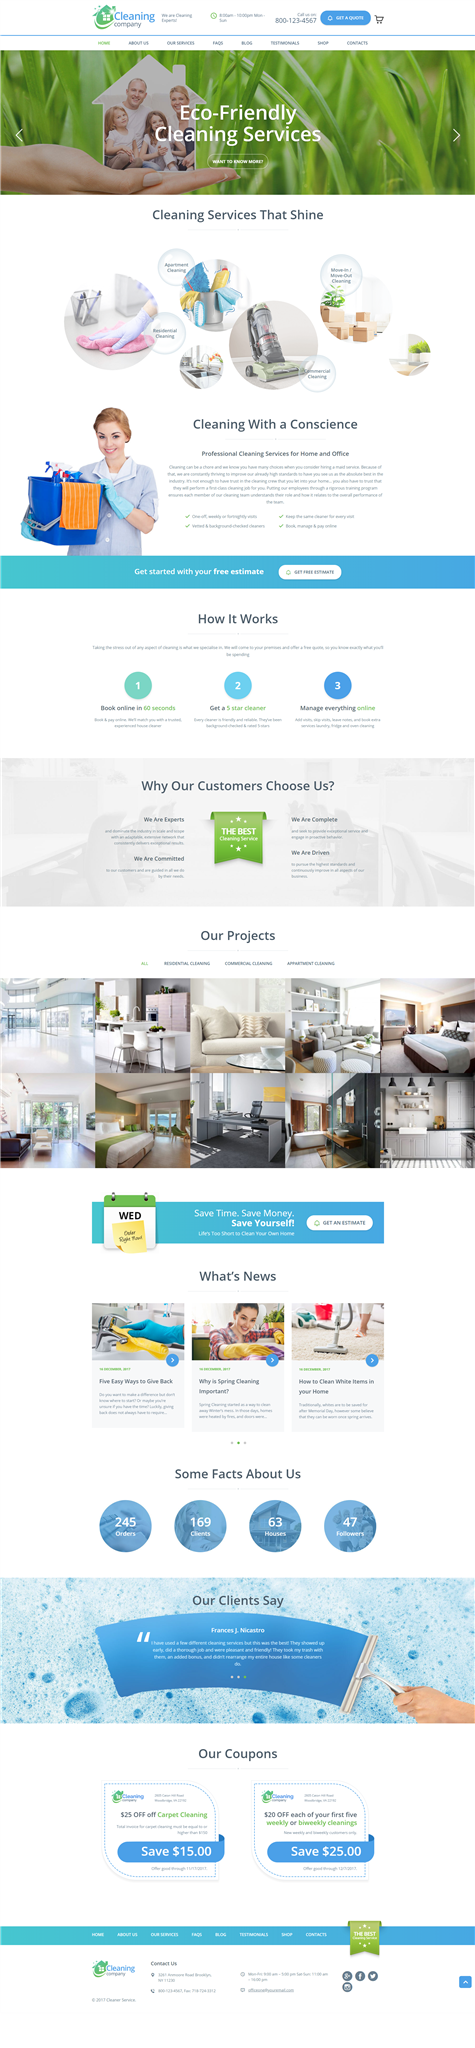 best-cleaning-services-wordpress-theme-psd-image